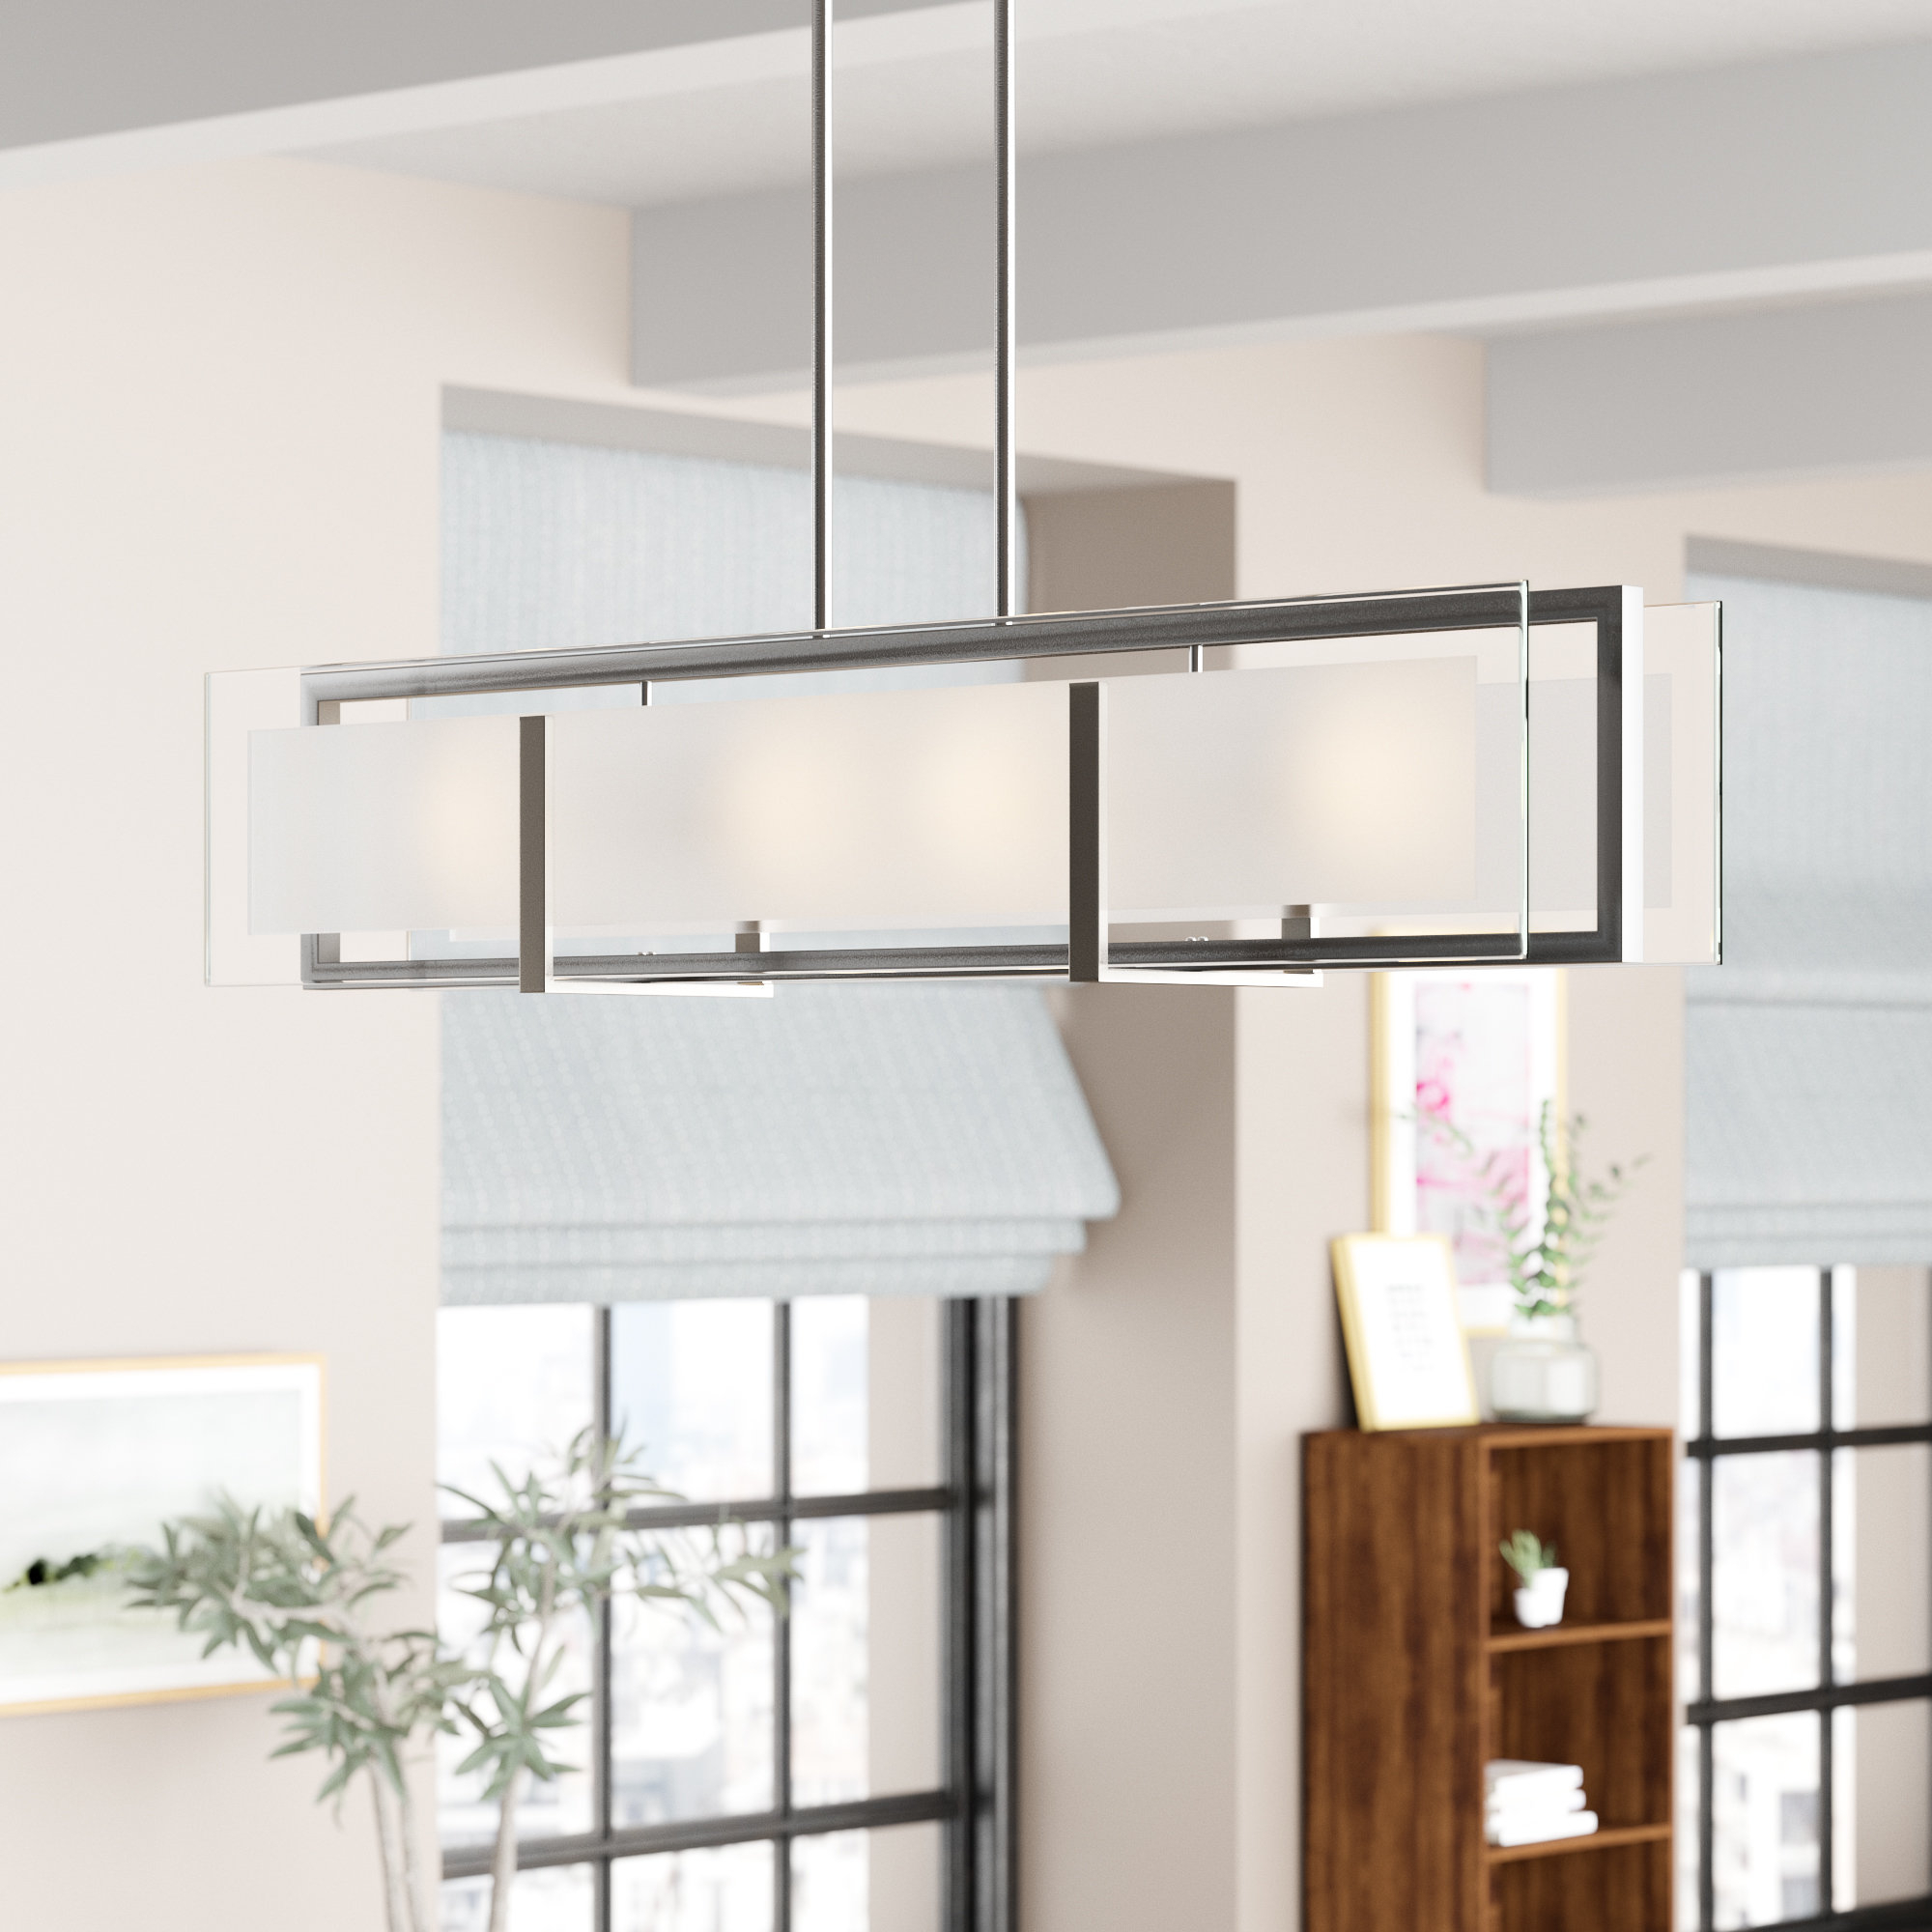 Square & Rectangular Chandeliers Sale – Up To 65% Off Until With Regard To Hewitt 4 Light Square Chandeliers (View 4 of 30)